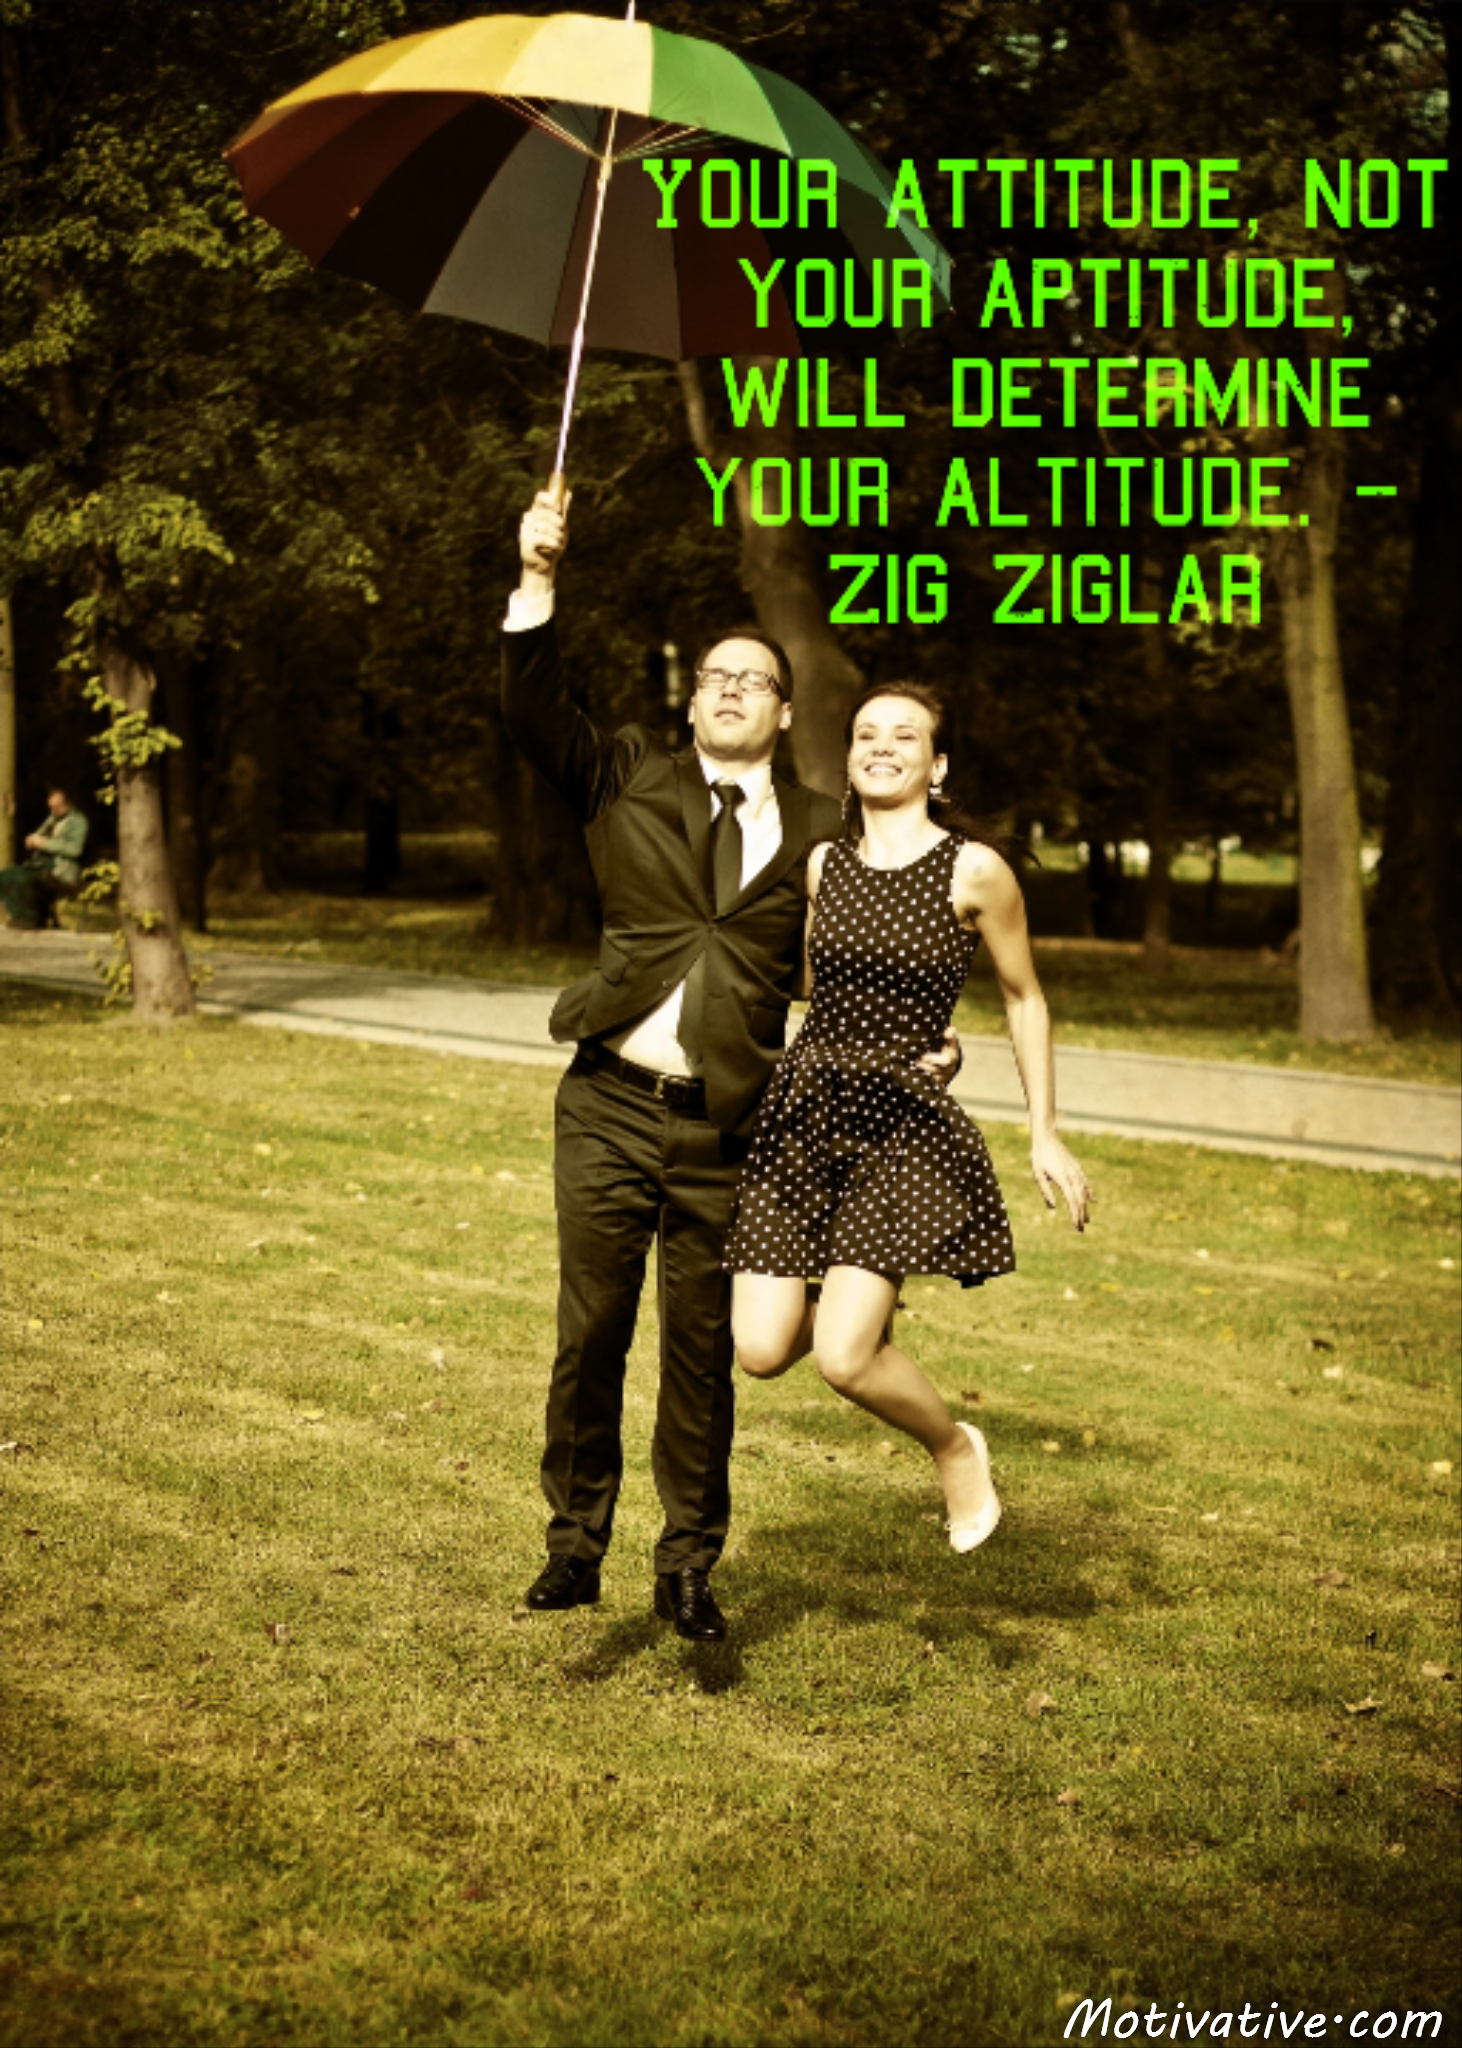 Your attitude, not your aptitude, will determine your altitude. – Zig Ziglar